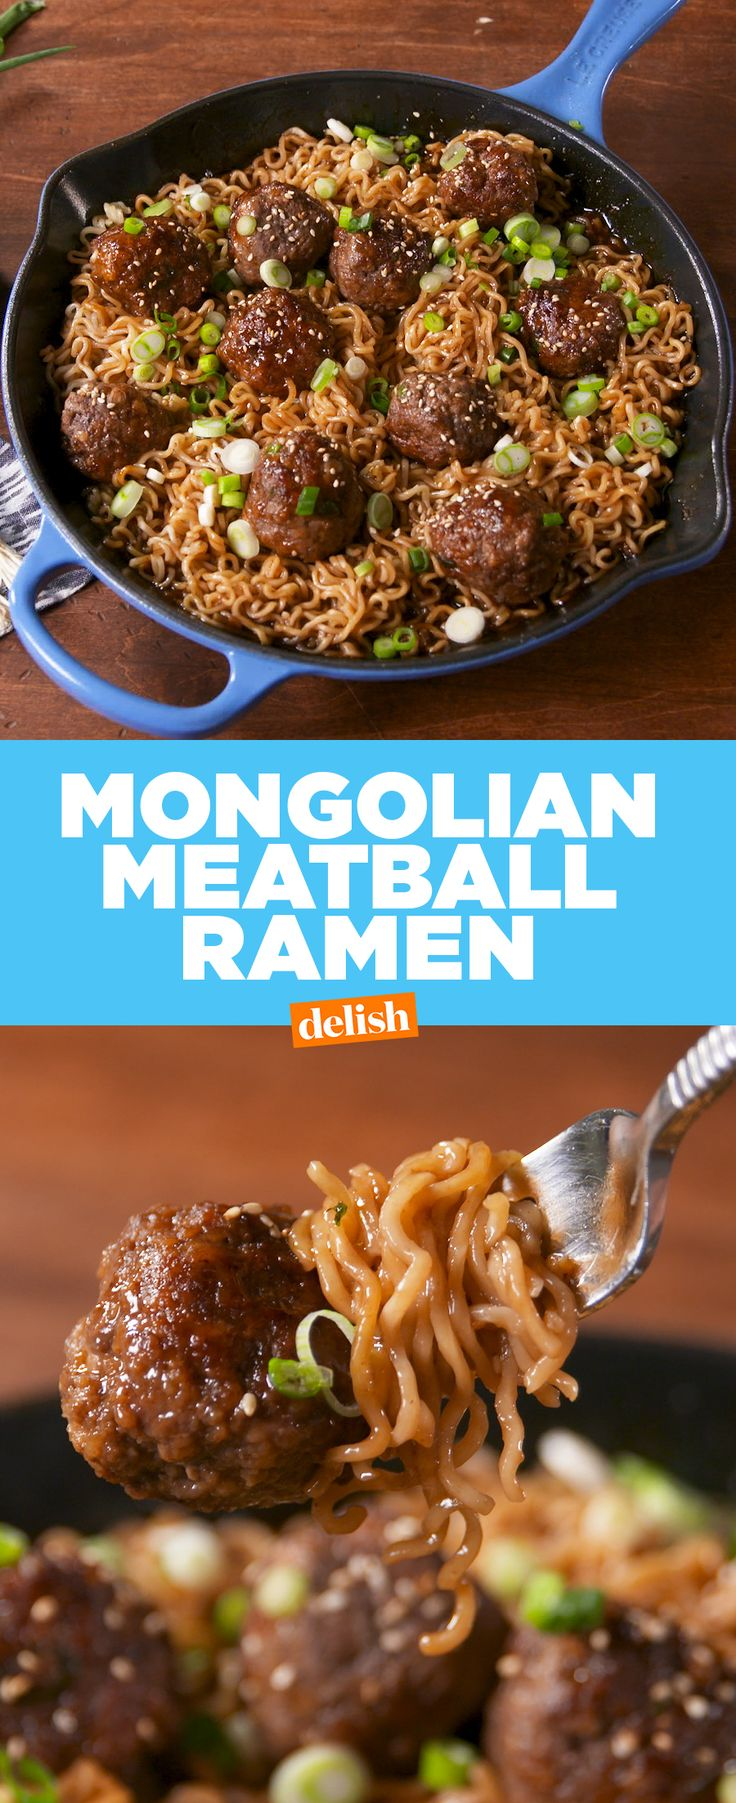 Mongolian Meatball Ramen is the sexier version of instant noodles.